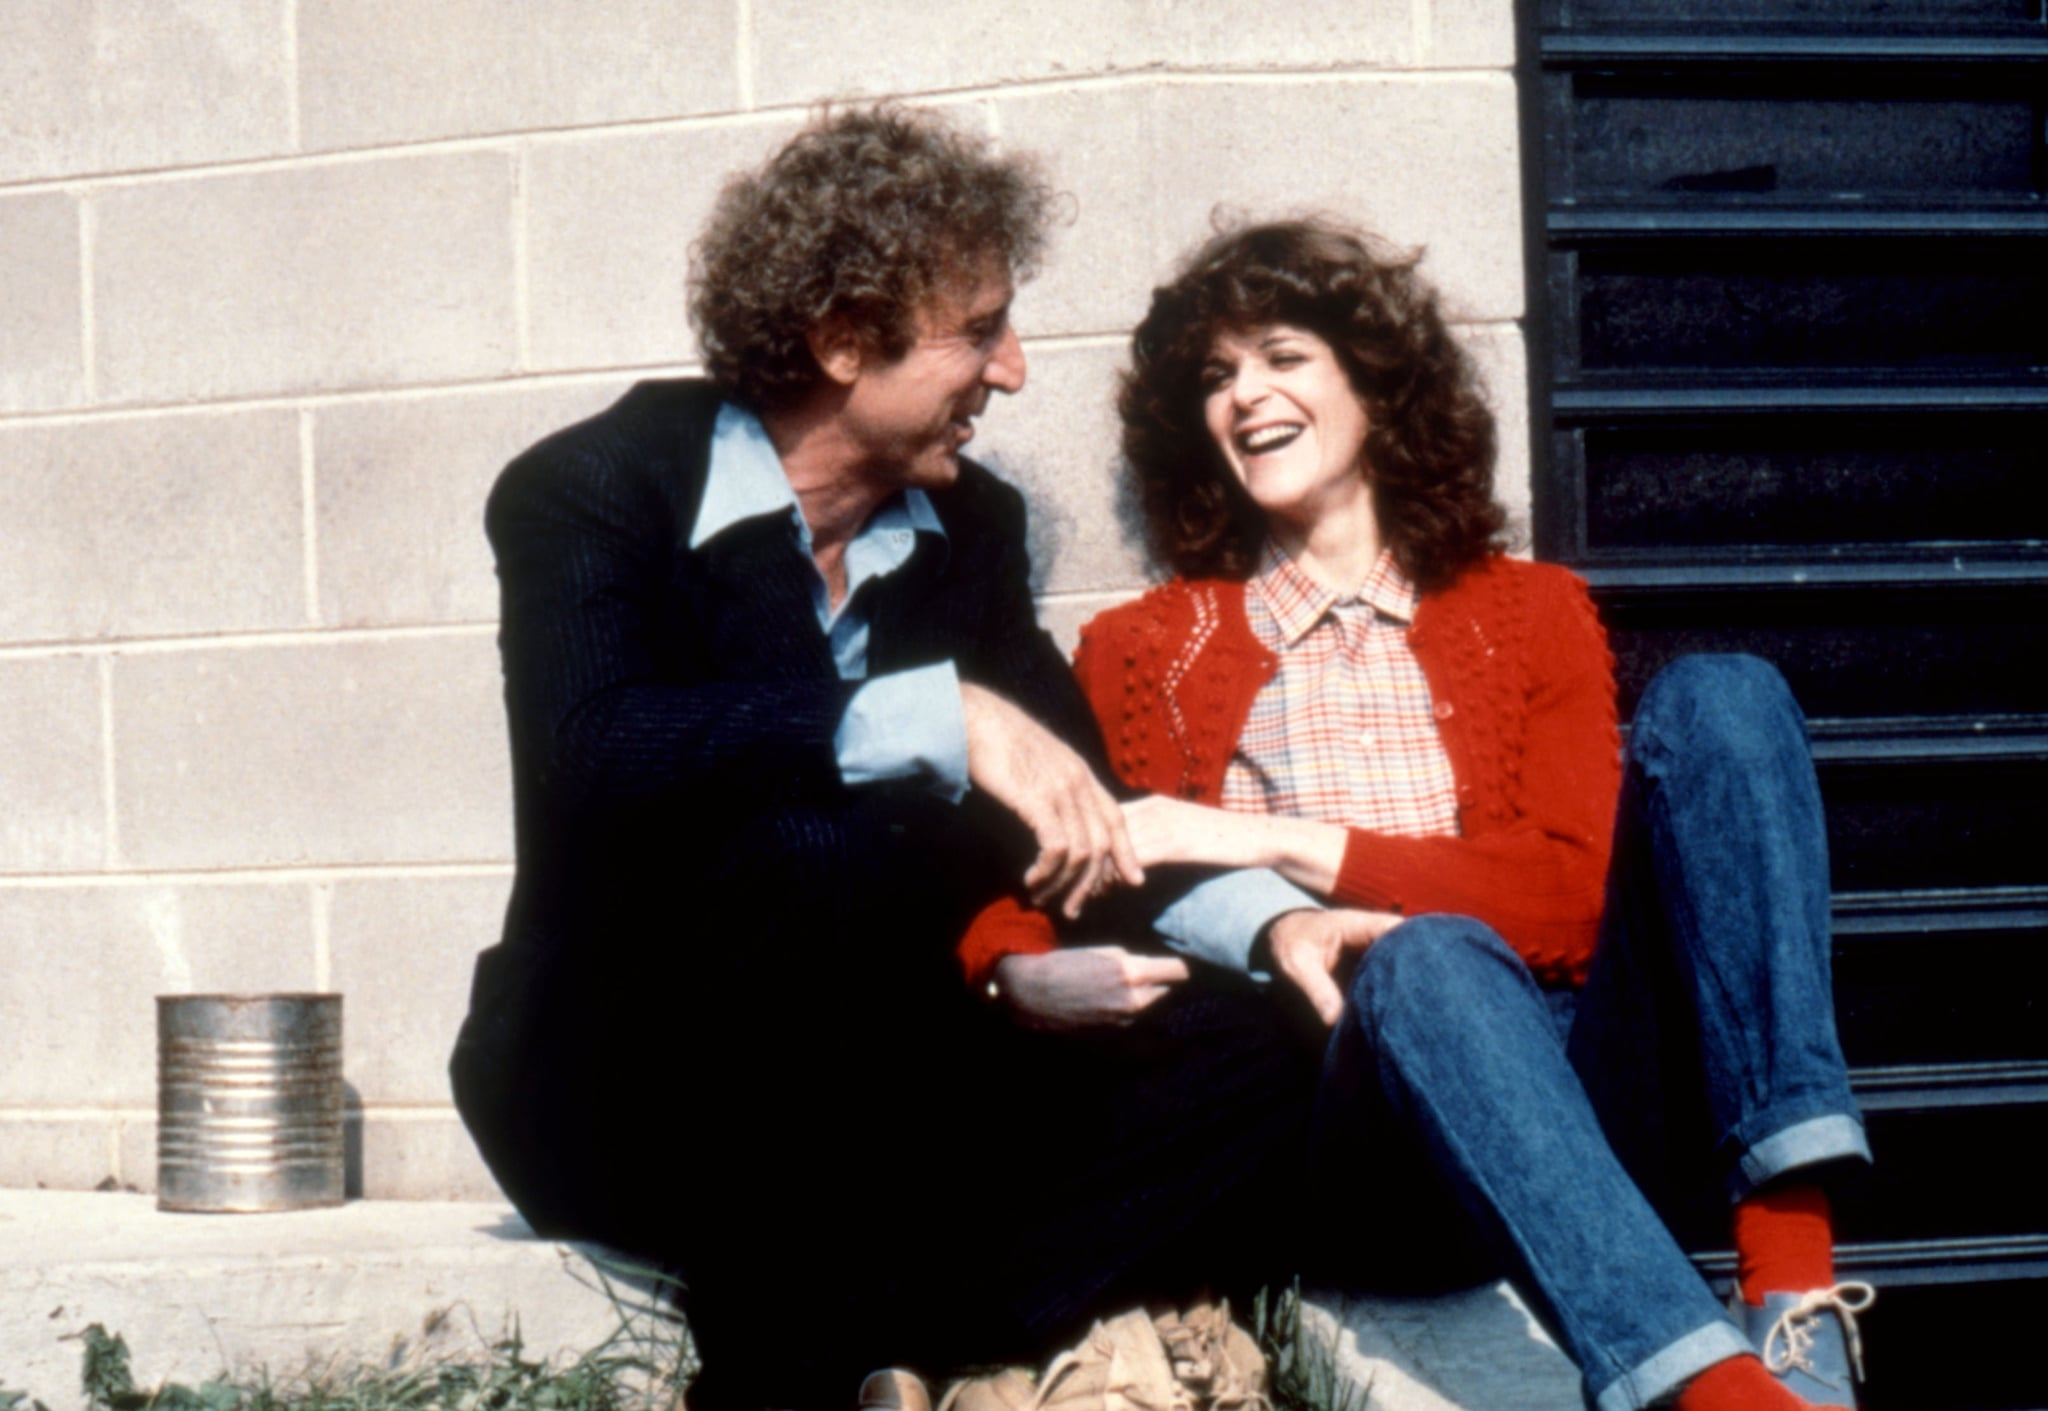 HANKY PANKY, Gene Wilder, Gilda Radner, 1982, (c)Columbia Pictures/courtesy Everett Collection